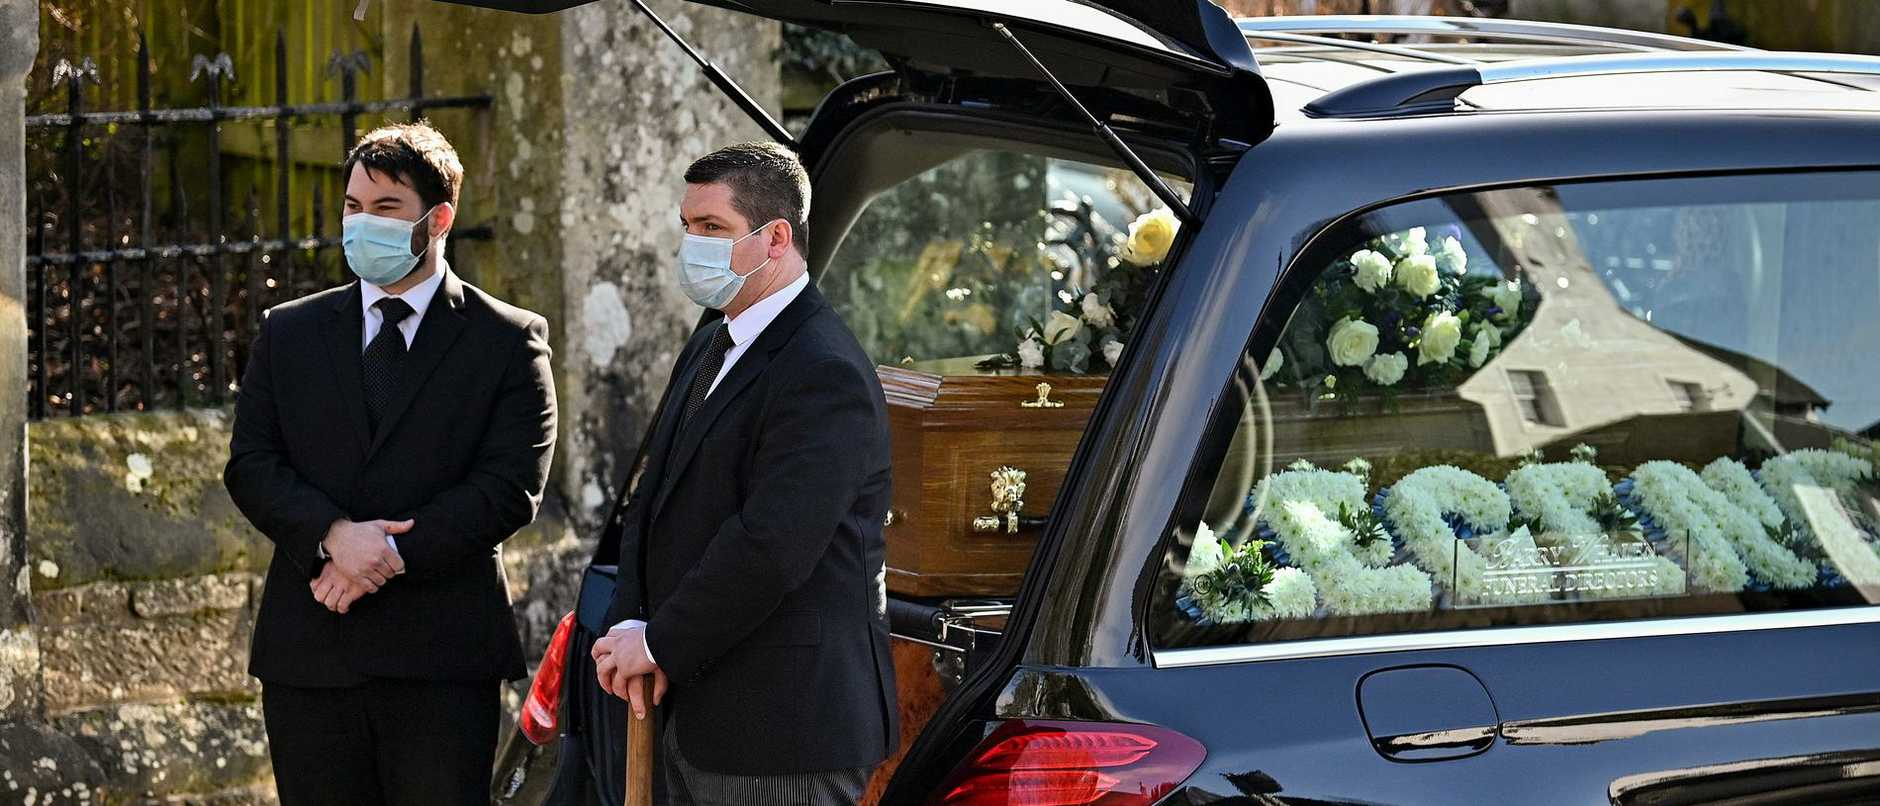 Fitzgerald's Funerals, Townsville, and WT Howard Funeral Services fined $12,600 over false ownership claims